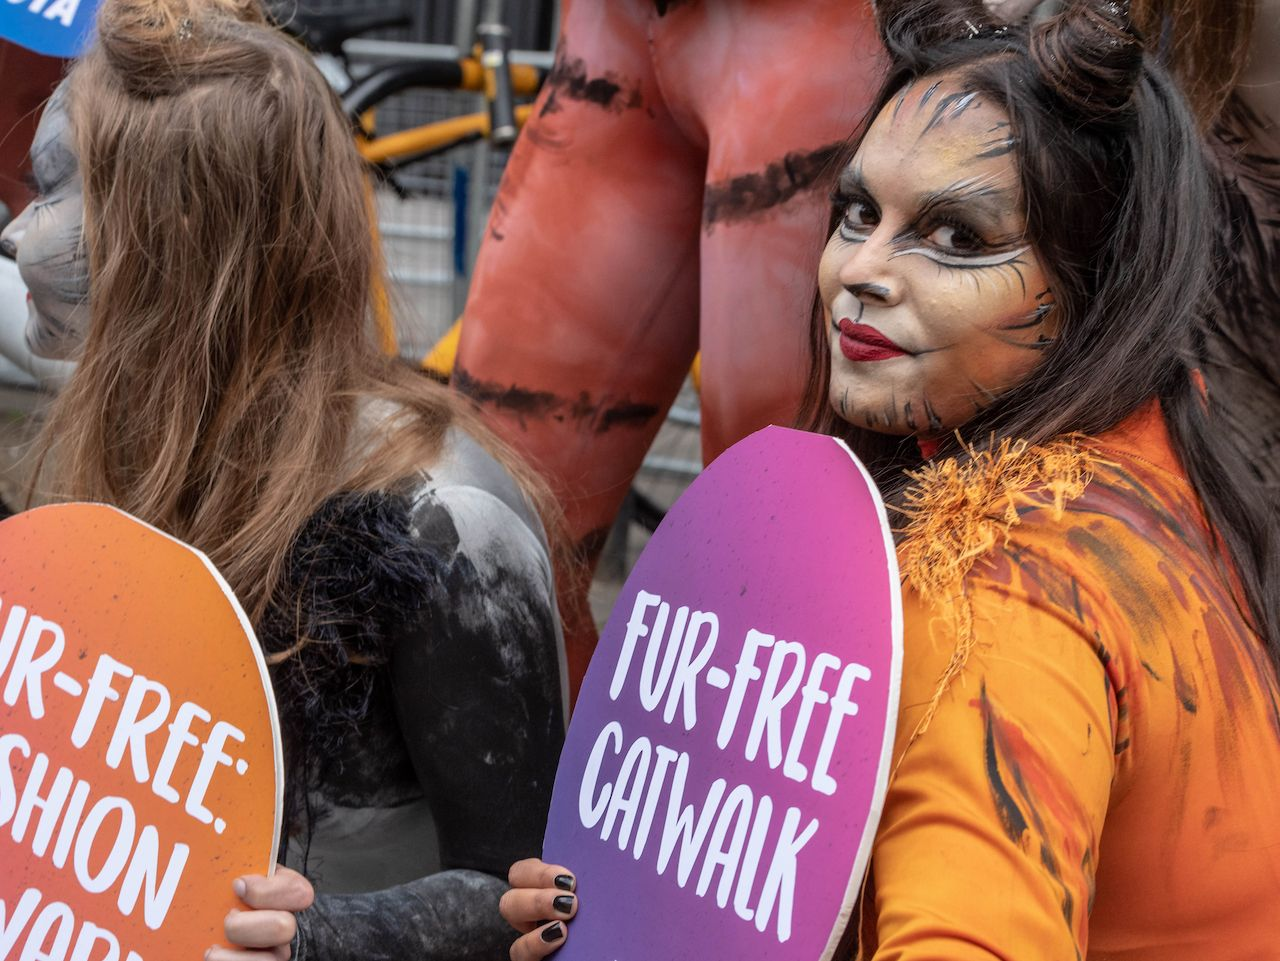 PETA demonstrators in cat outfits celebrate a No Fur fashion week in London